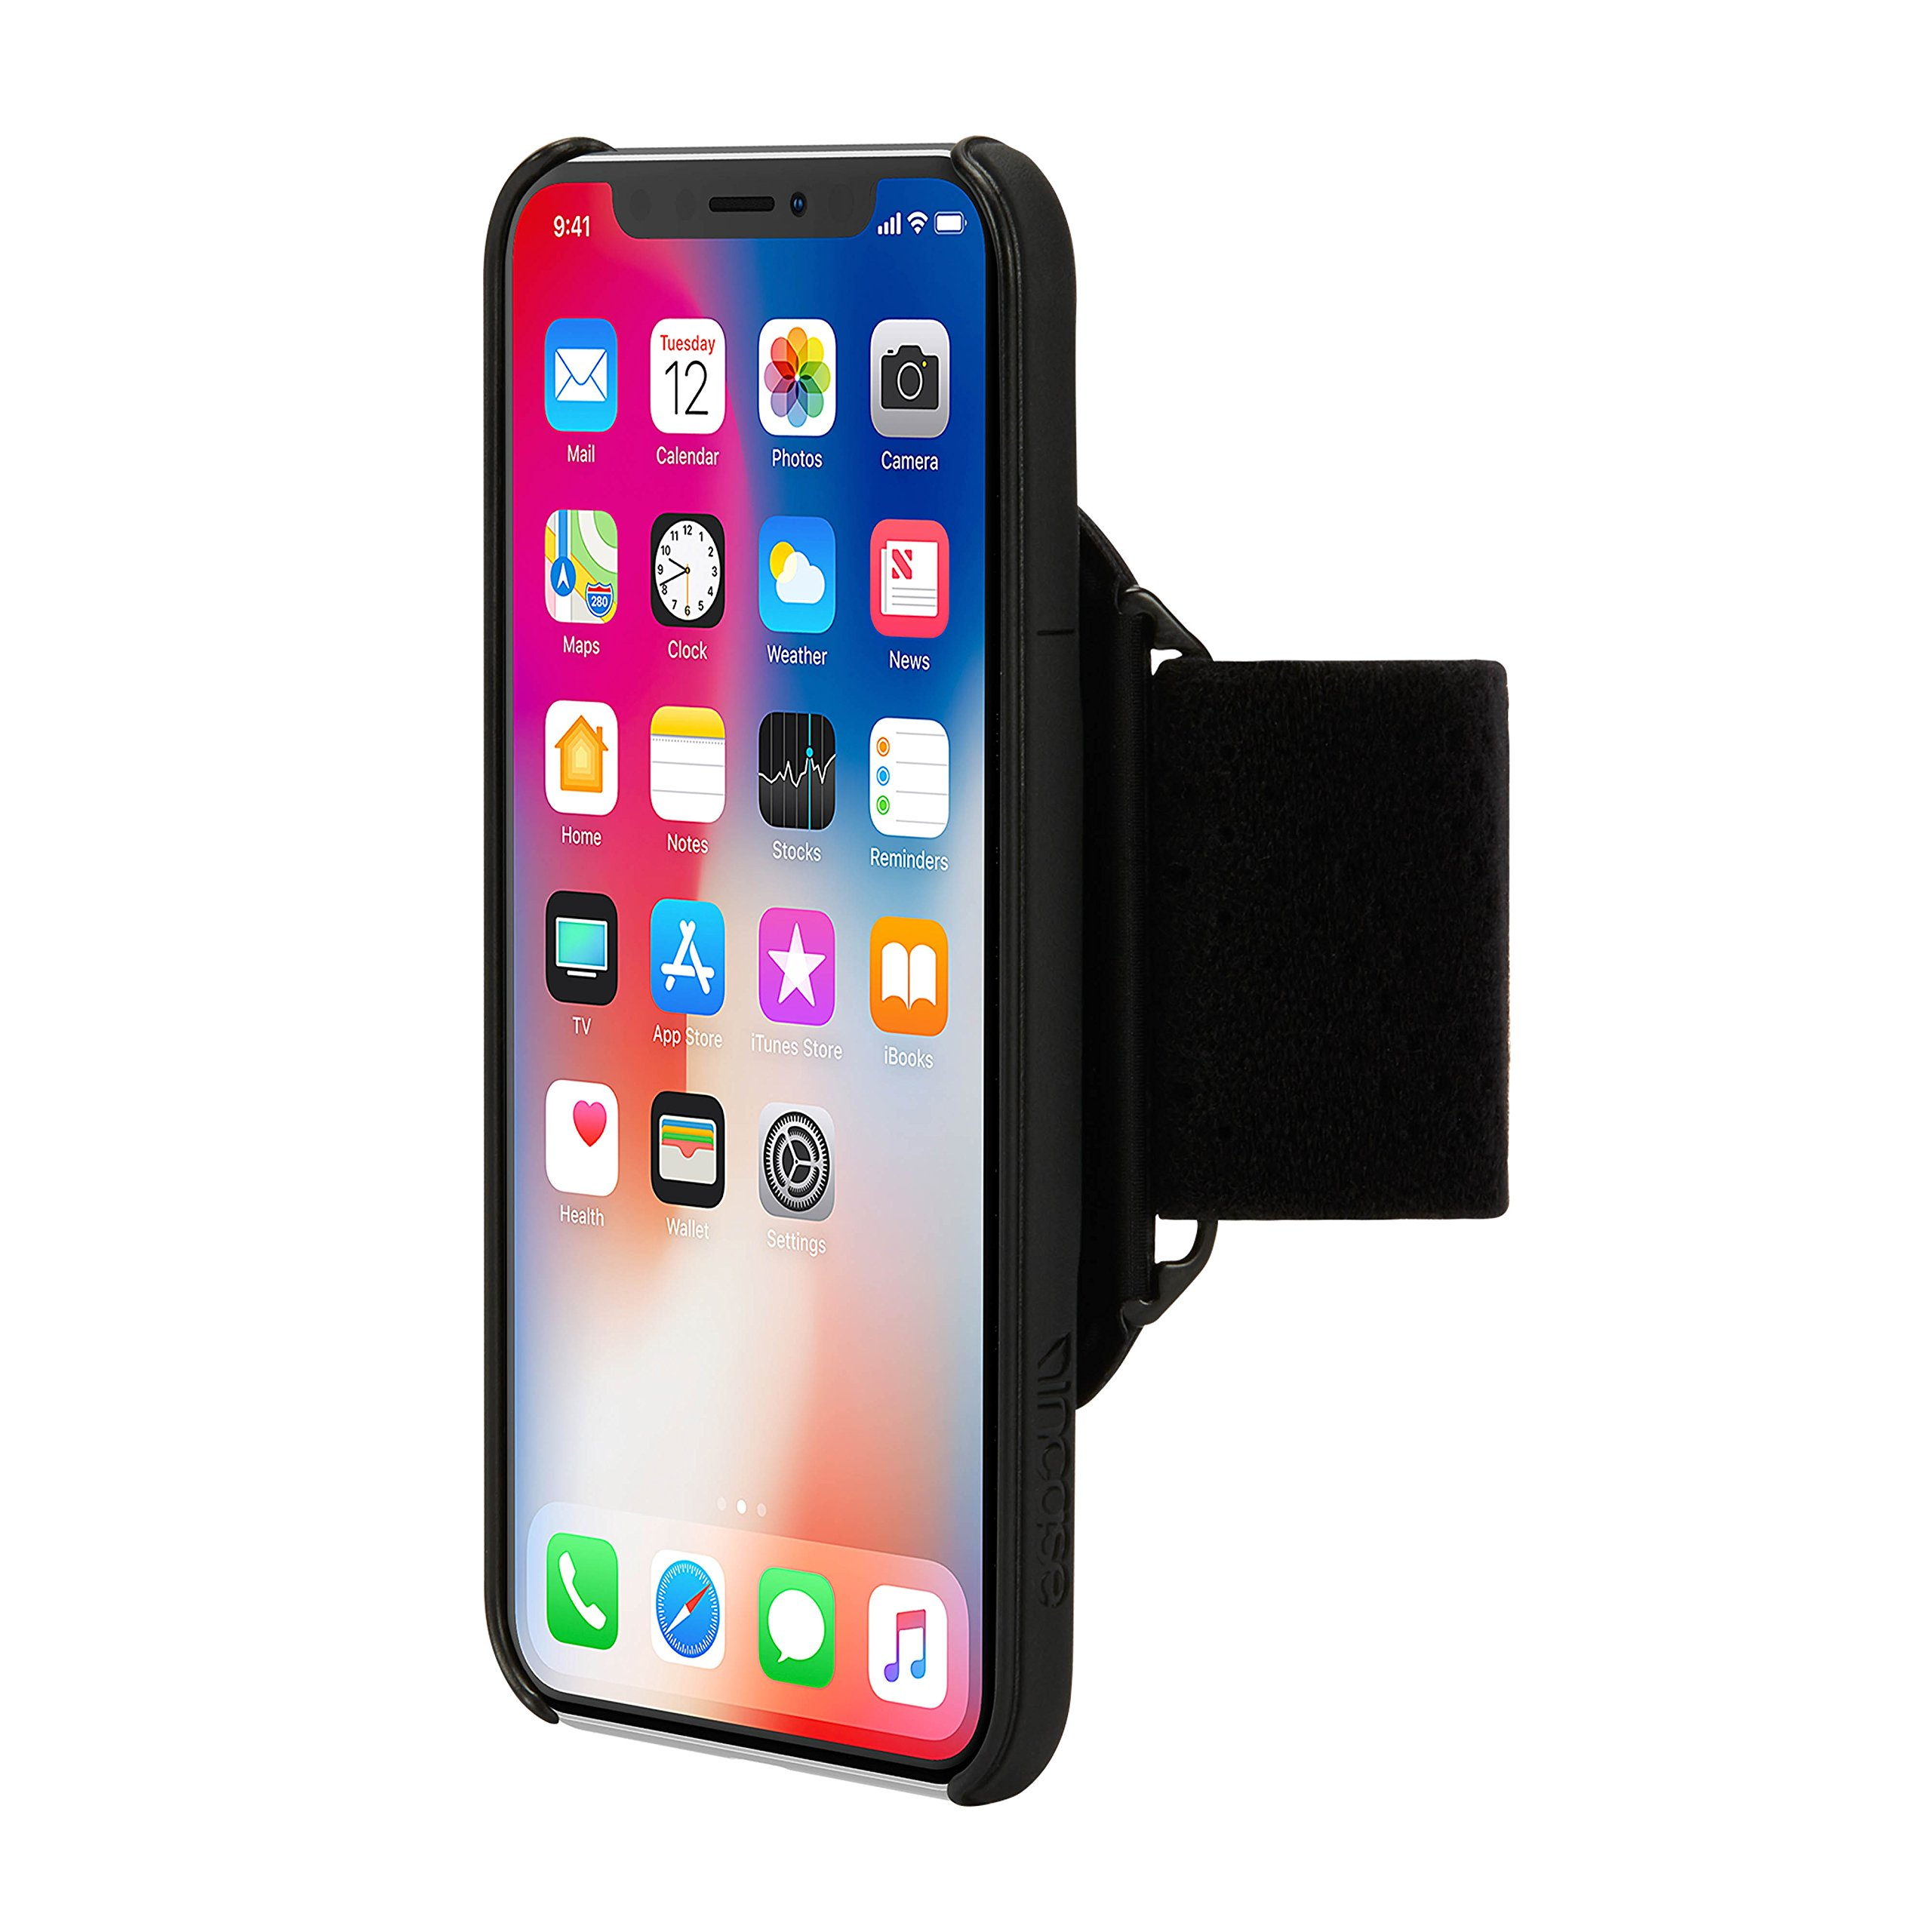 Armband Pro for iPhone X by Incase Designs